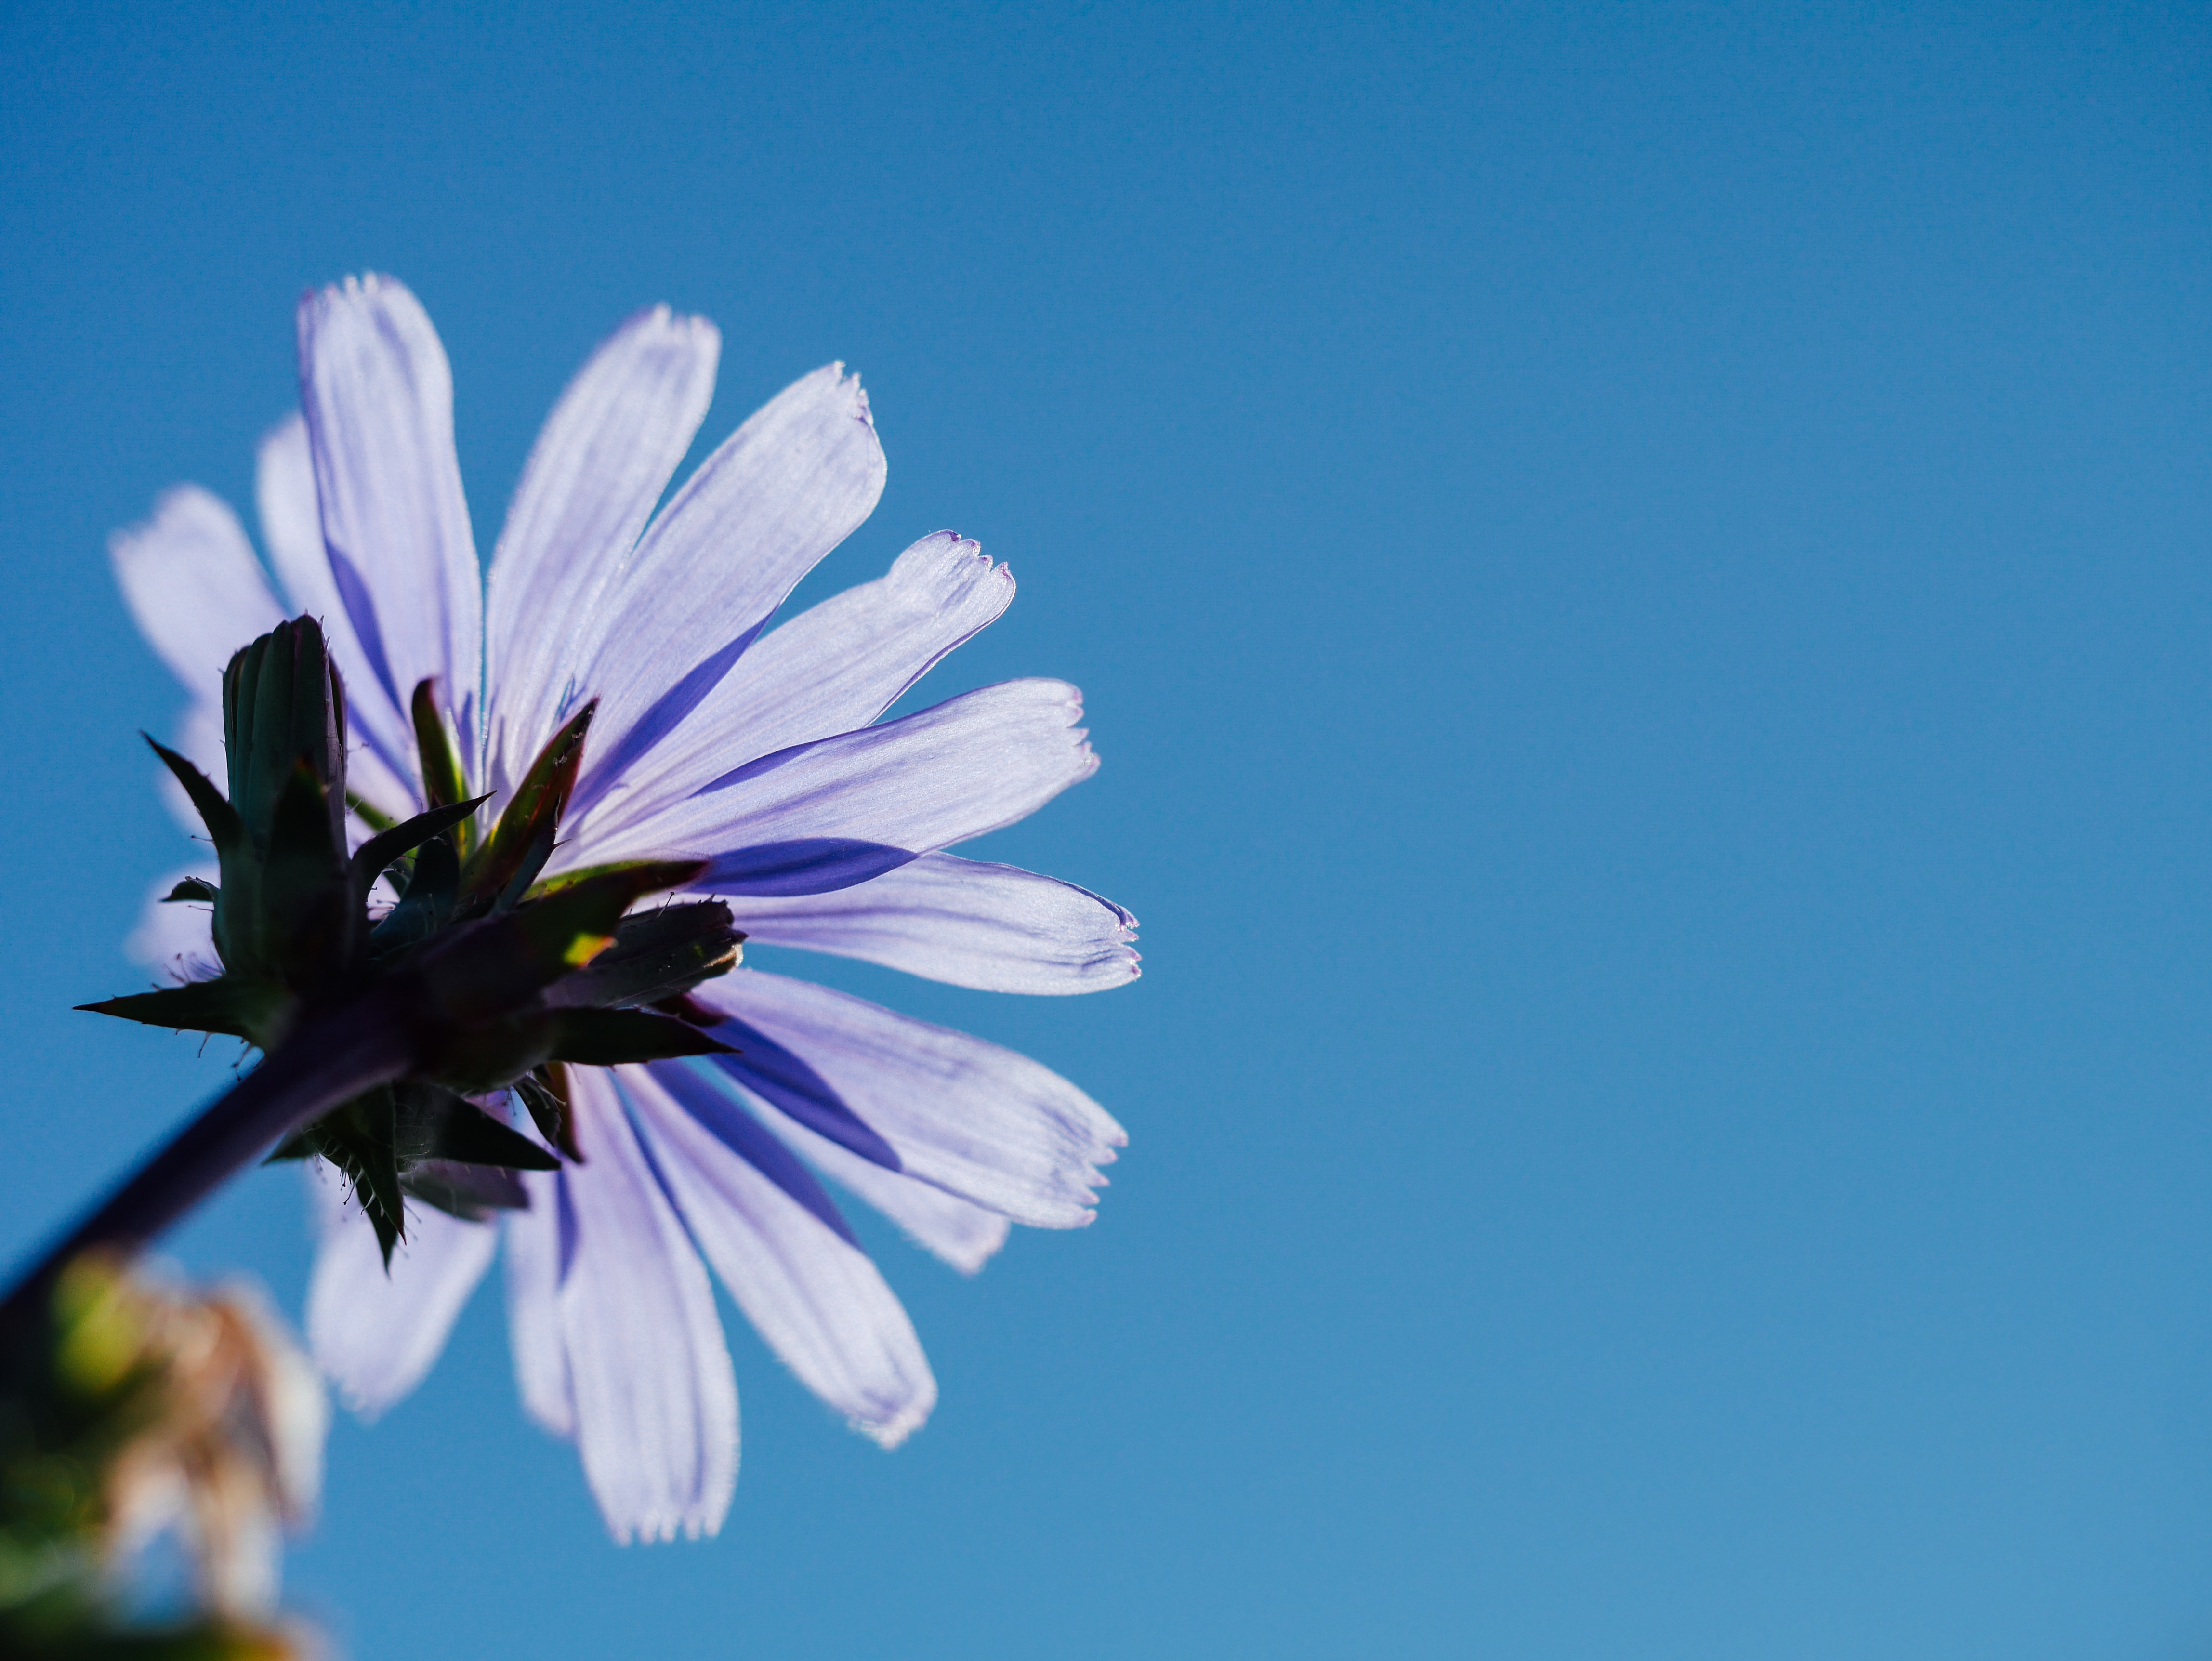 A low-angle shot of a single violet daisy flower